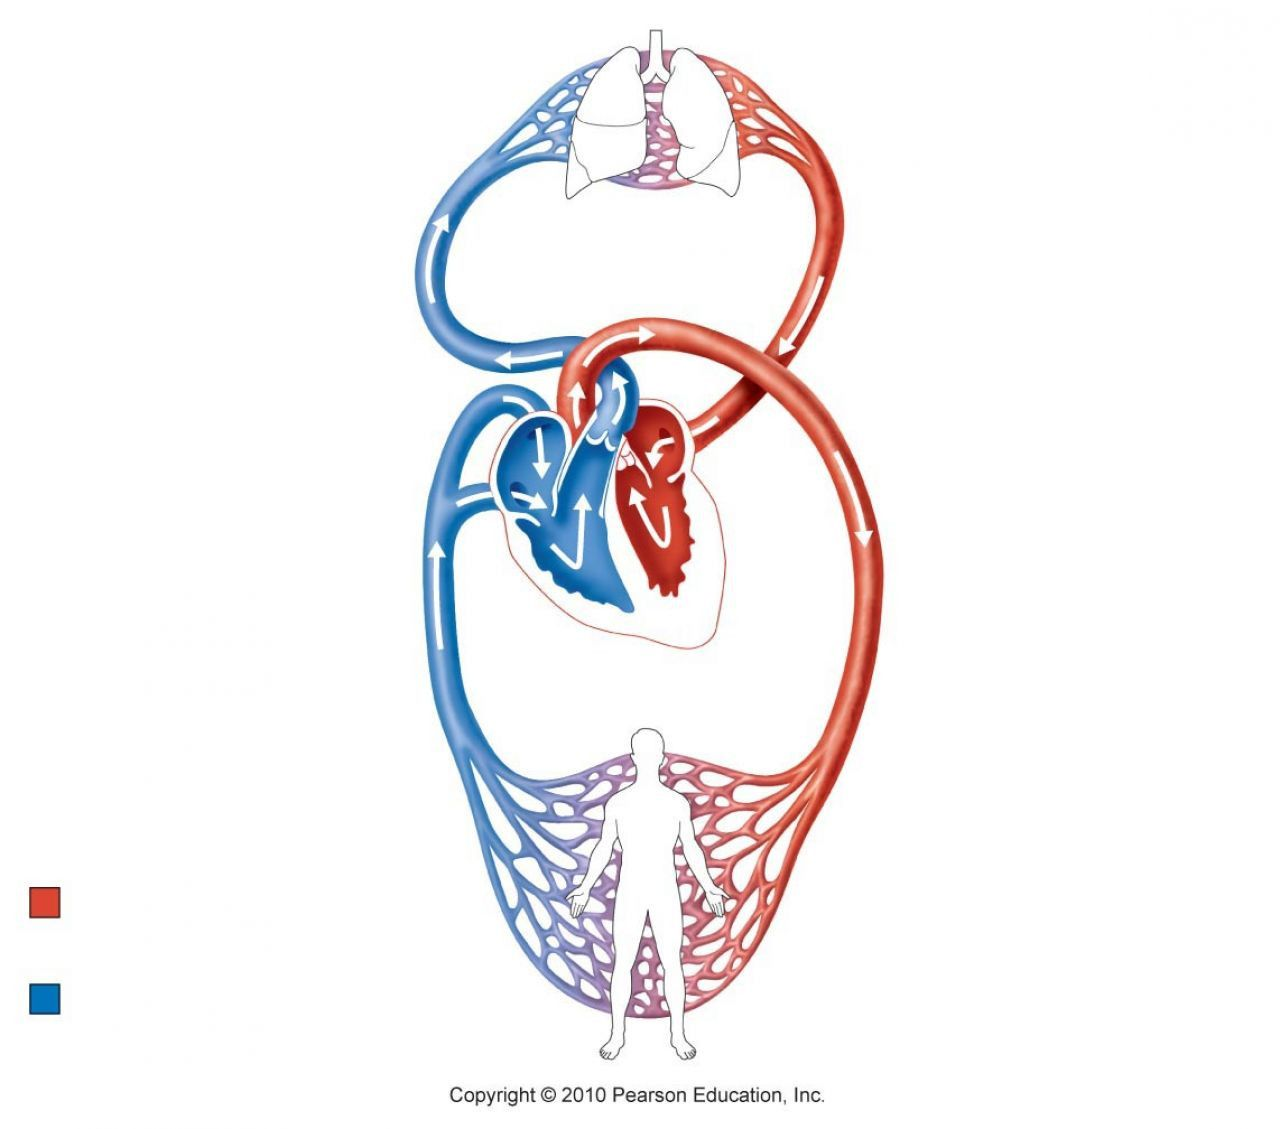 Circulatory System Diagram Without Labels Awesome Heart